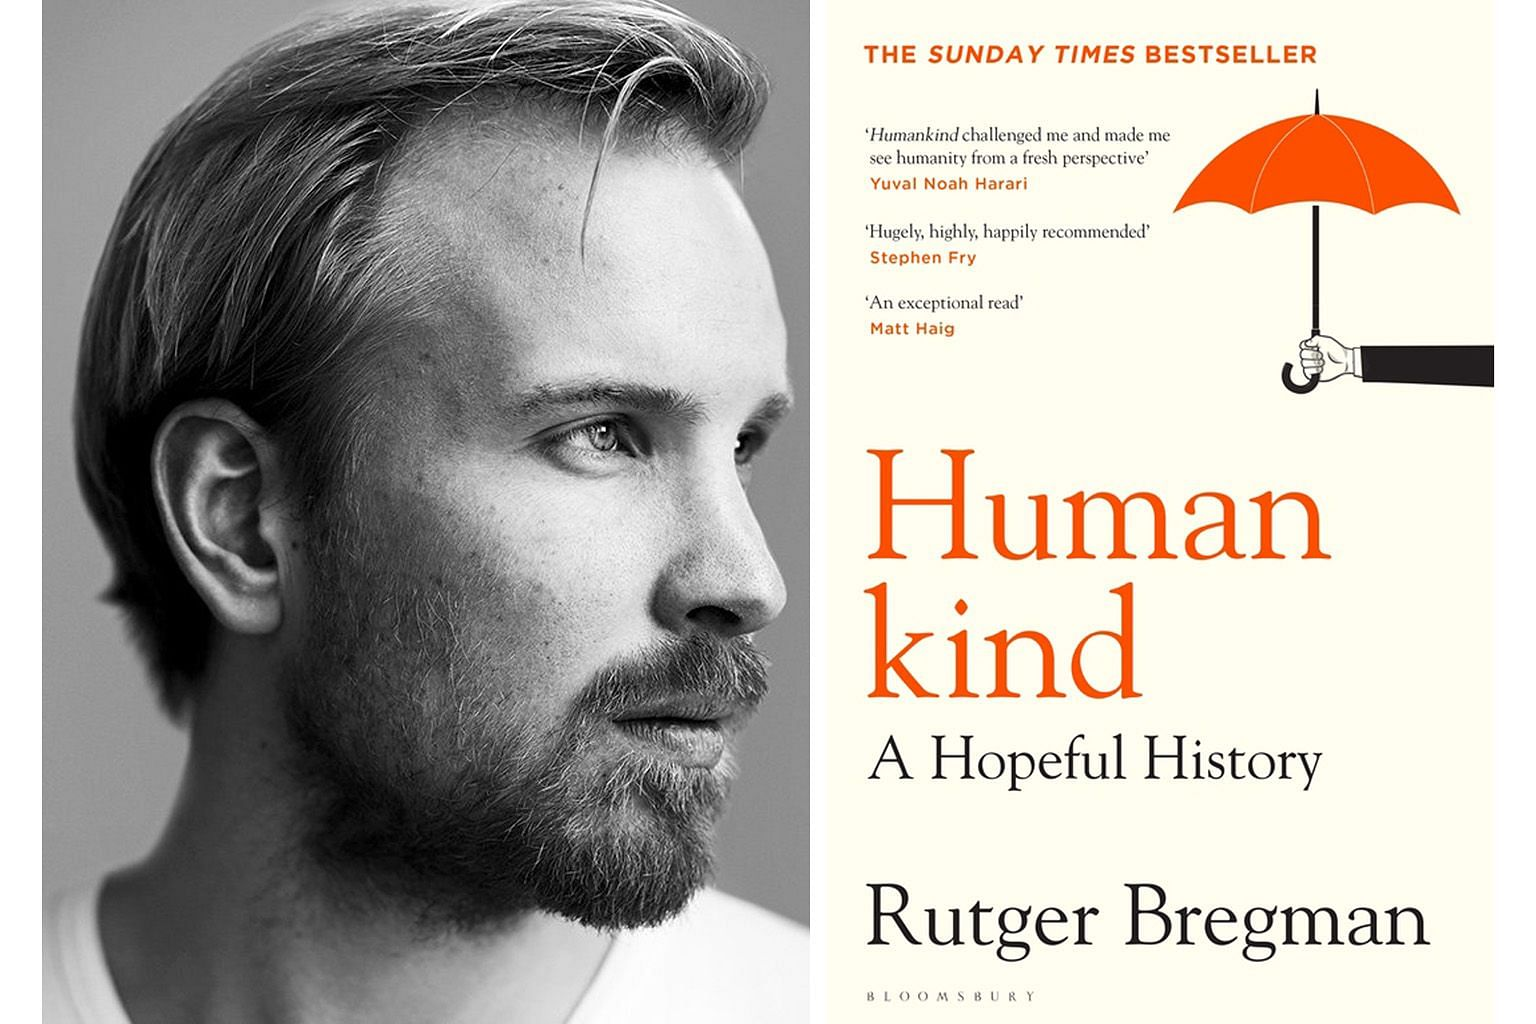 Author Rutger Bregman's Humankind is chock-full of examples of how people band together in the face of crises.